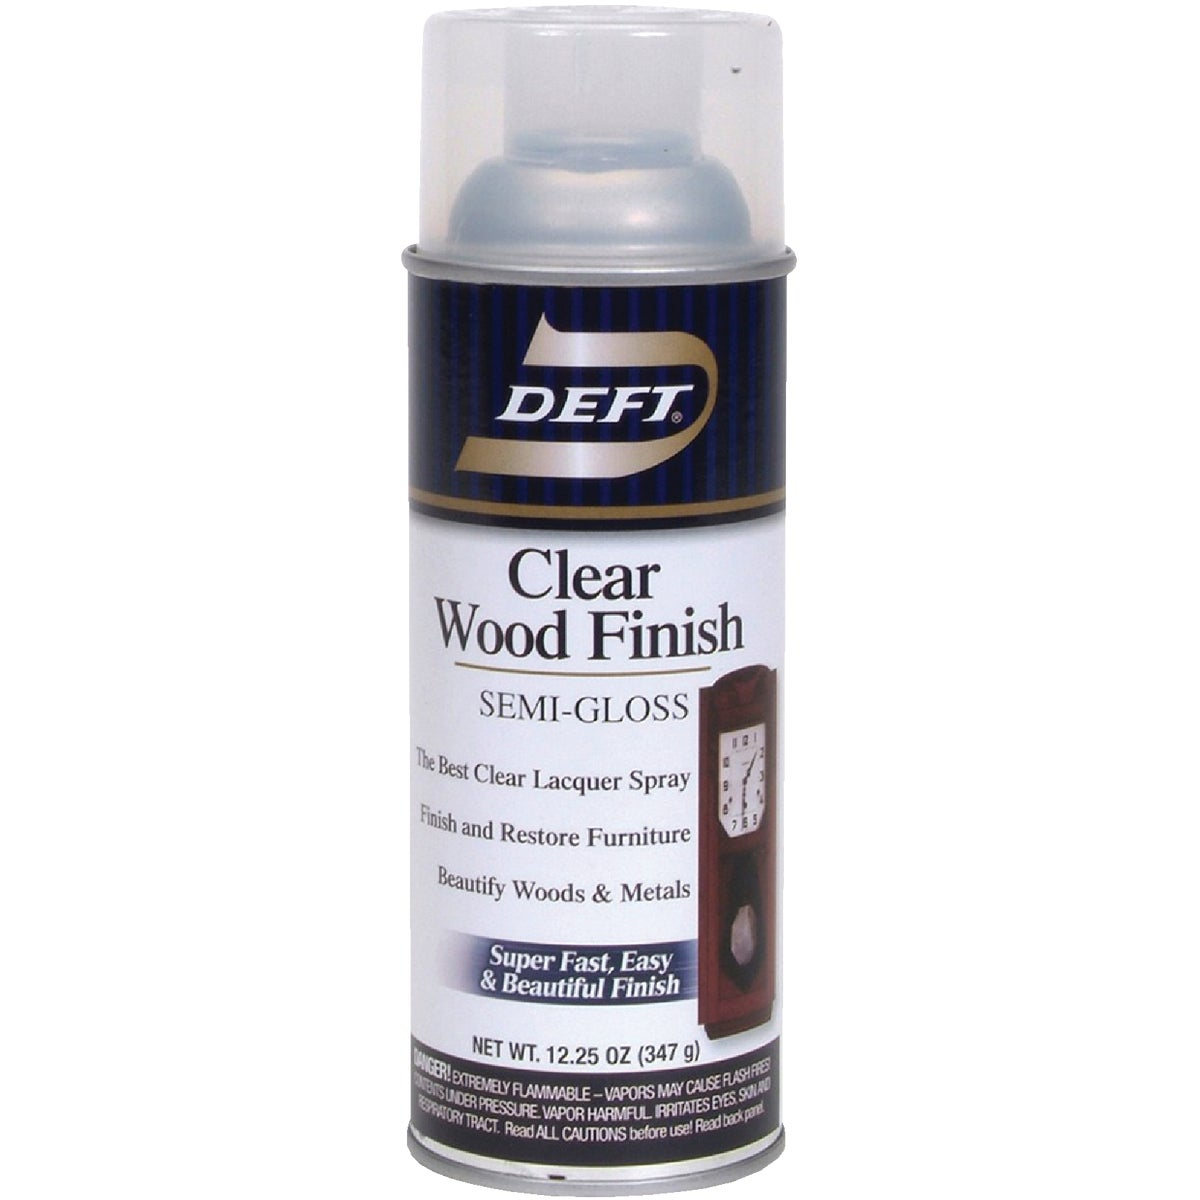 DEFT S/G SPRAY FINISH - DFT011/54 by Deft